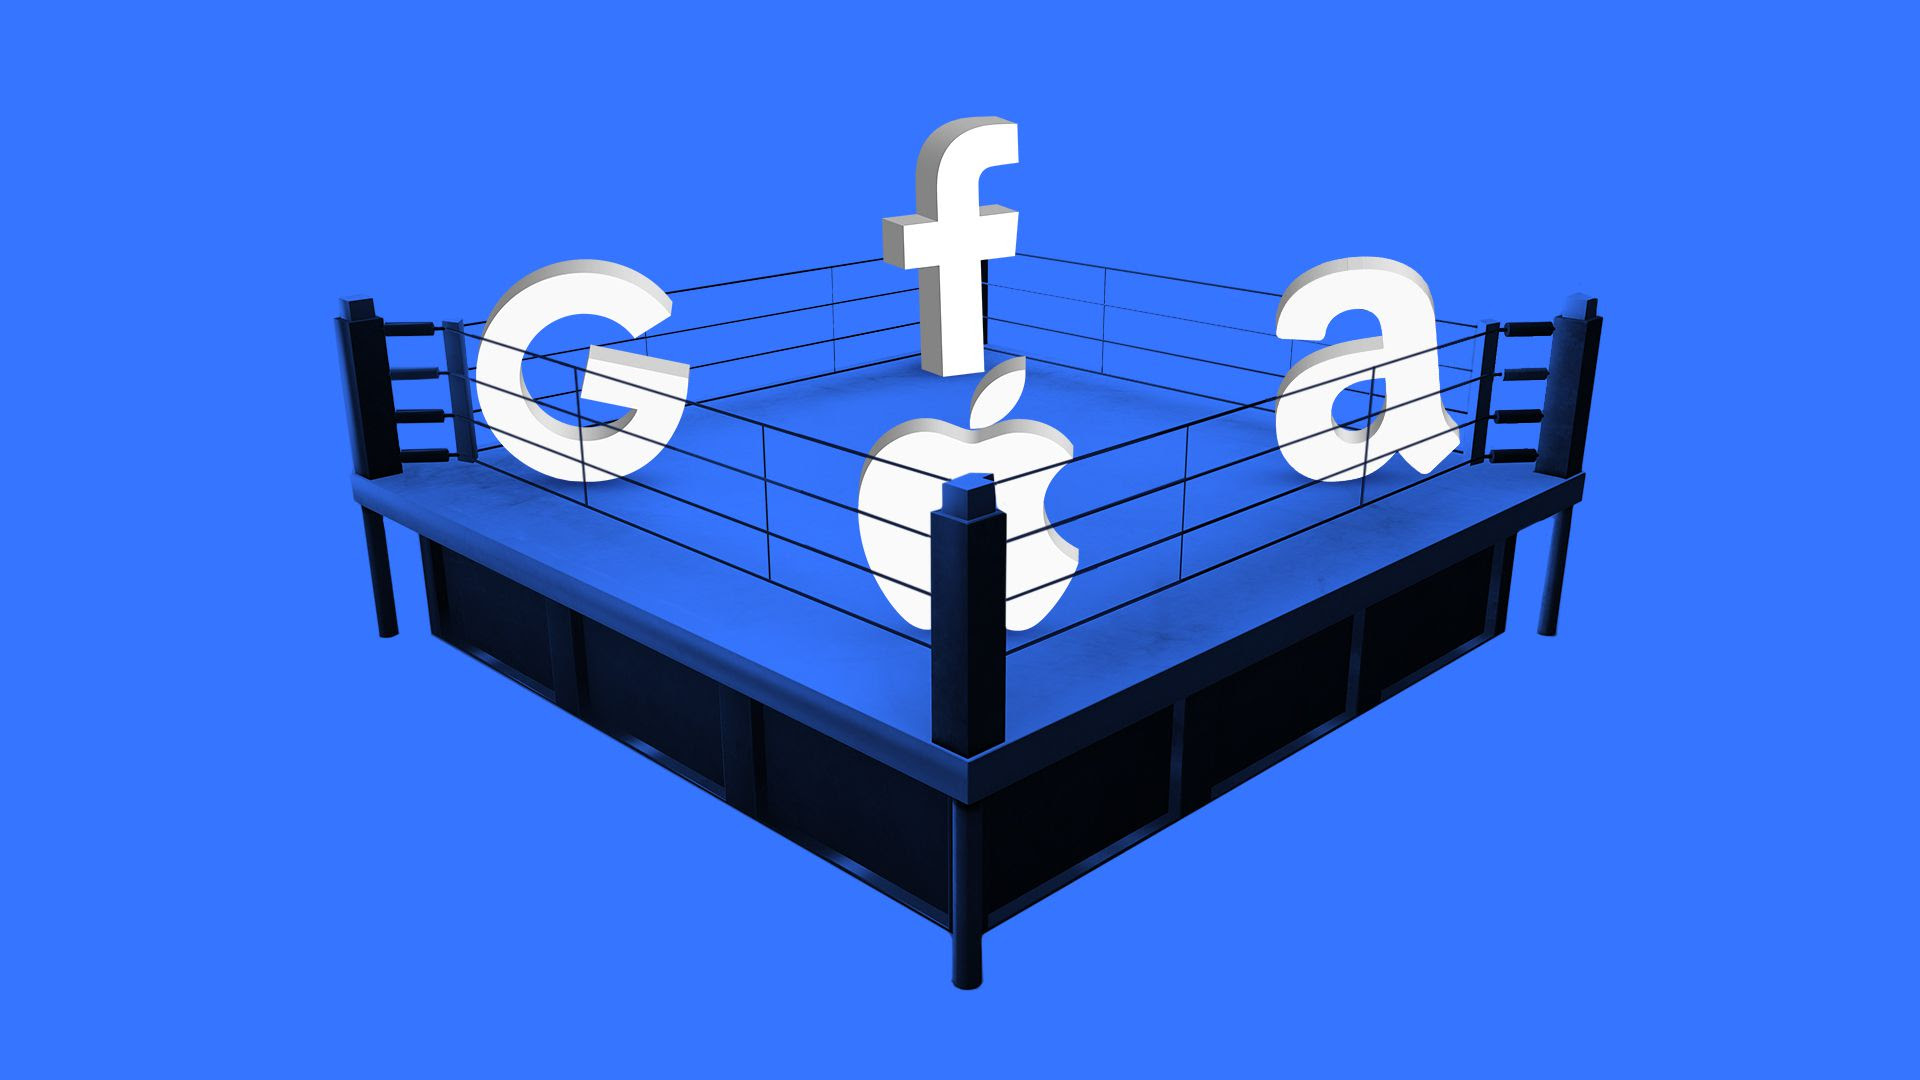 Illustration of tech logos in a boxing ring